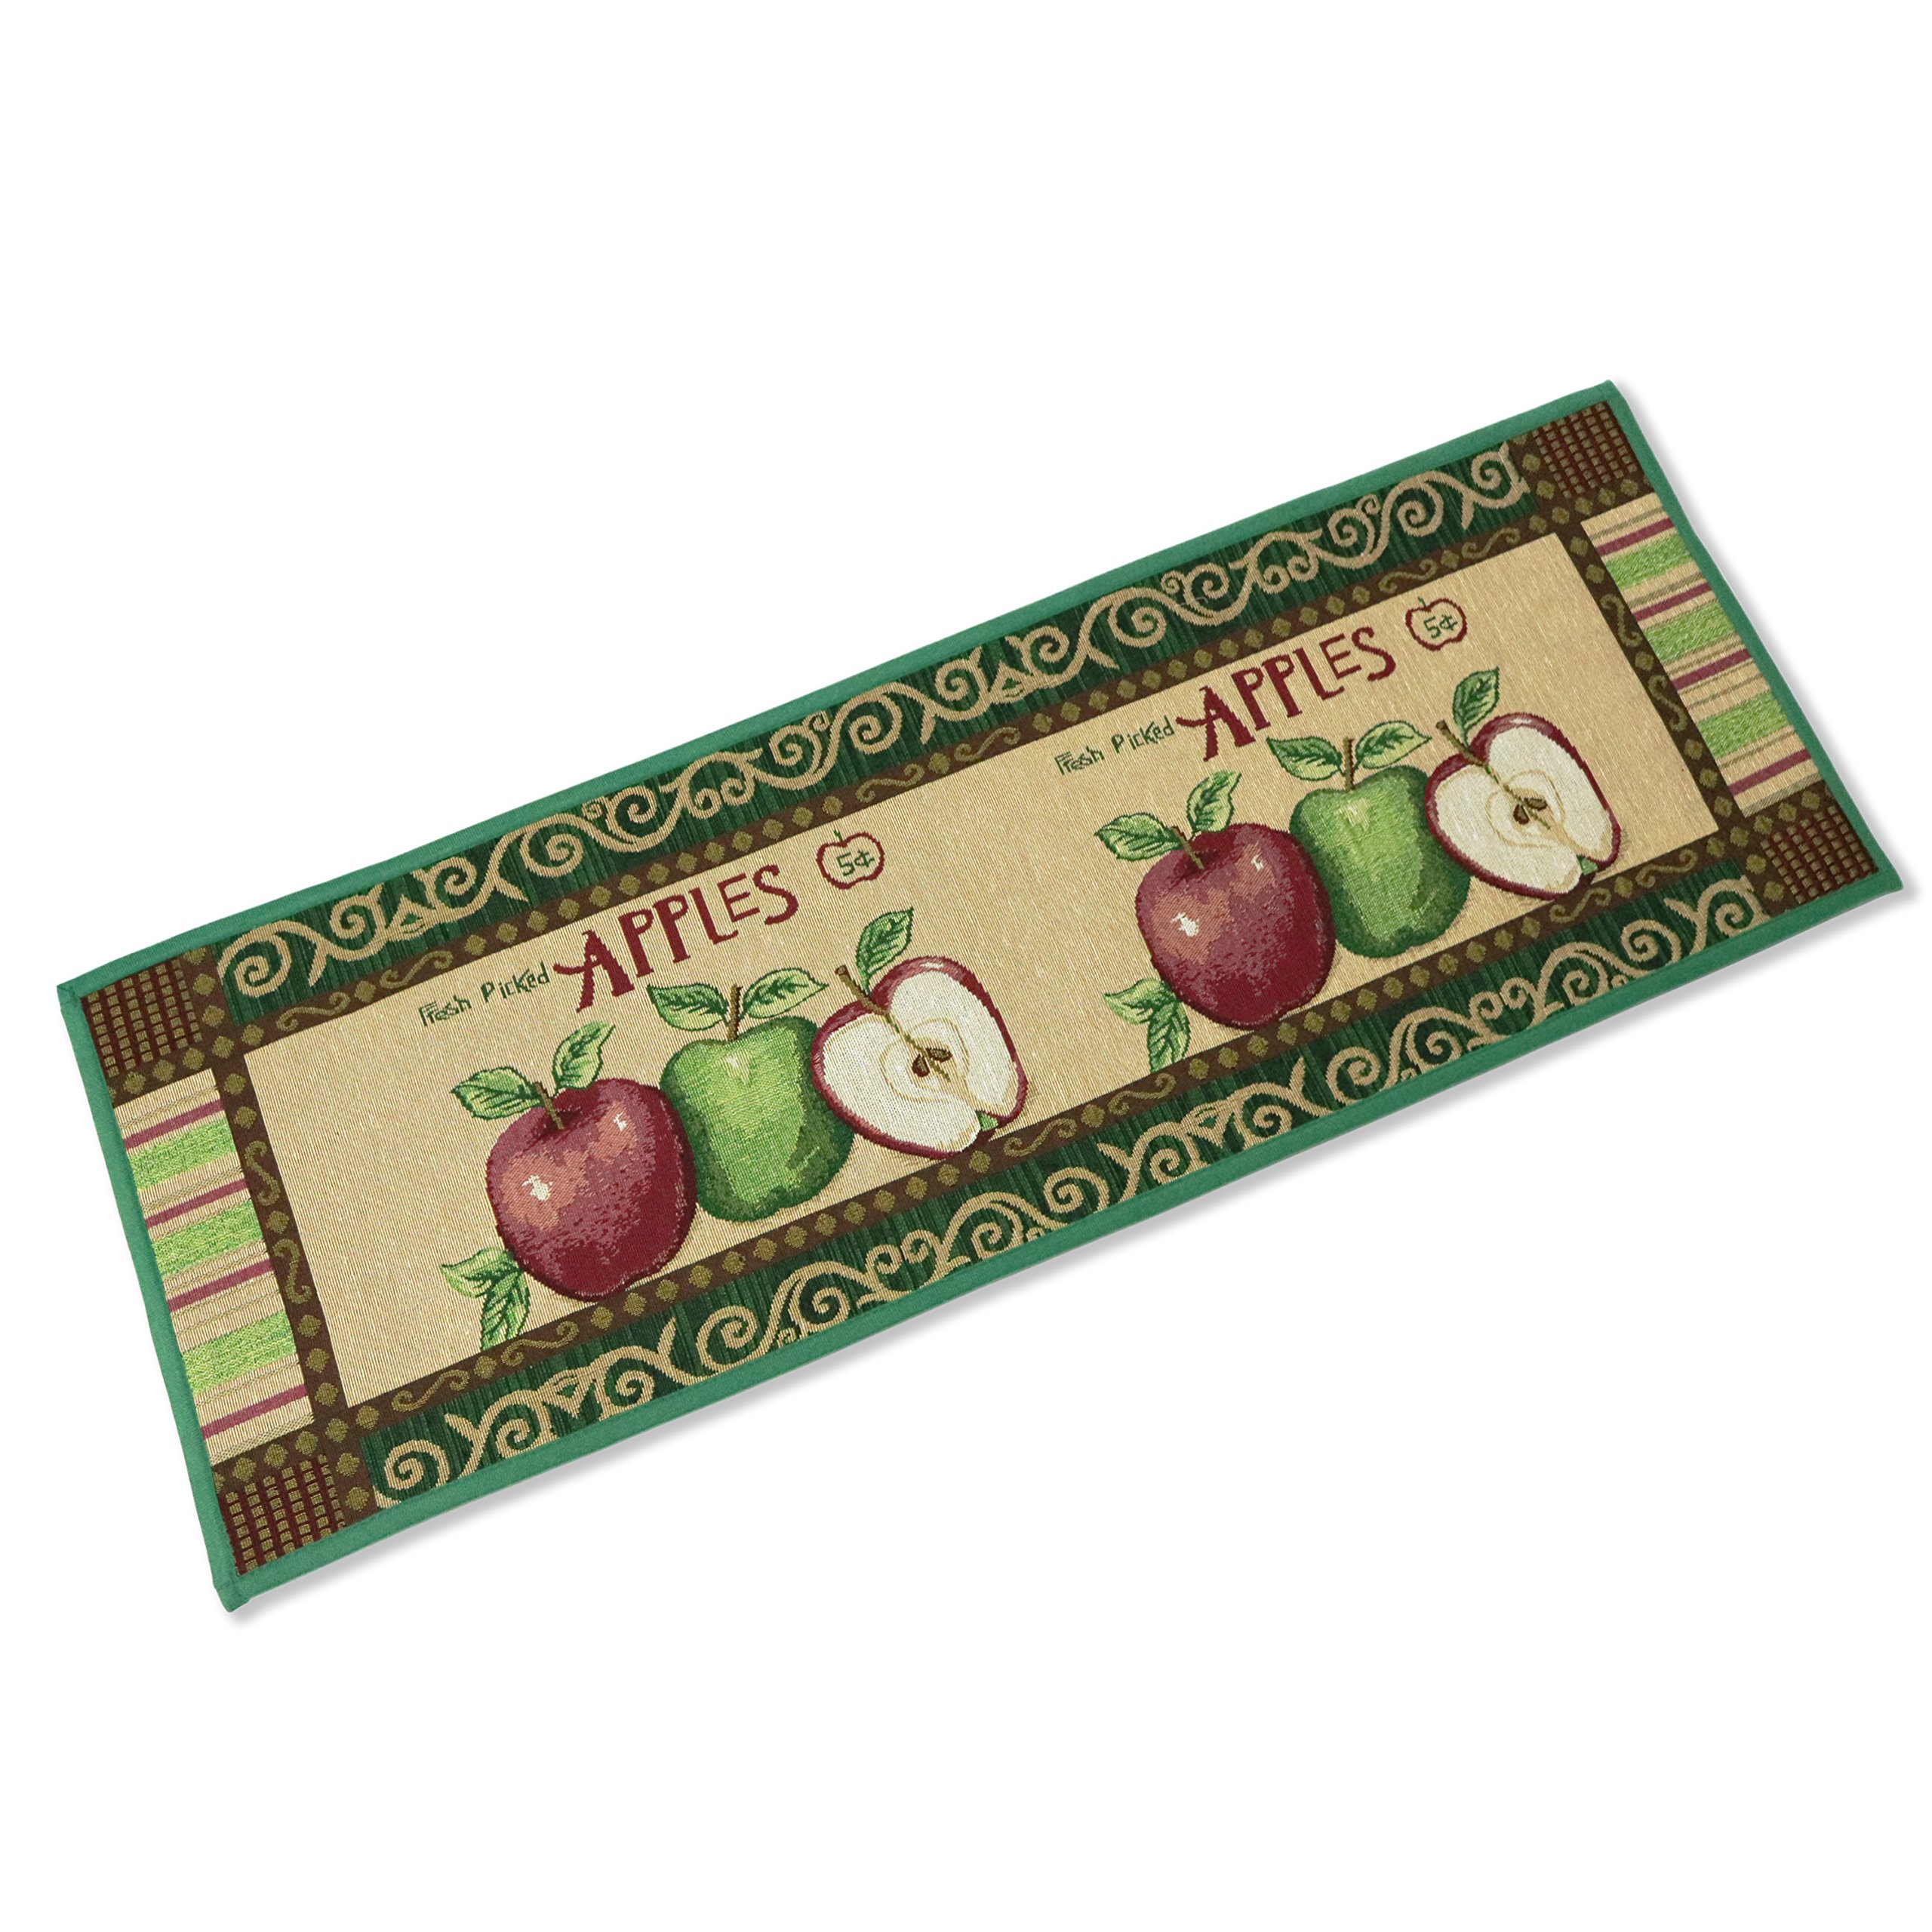 Kitchen Rugs Apple Non Slip Kitchen Mat Extra Long Runner Area Rug for Kitchen Jacquard Bathroom Carpet Printed Floor Rugs,18 x 47 Inches by Amian Shop (Image #1)